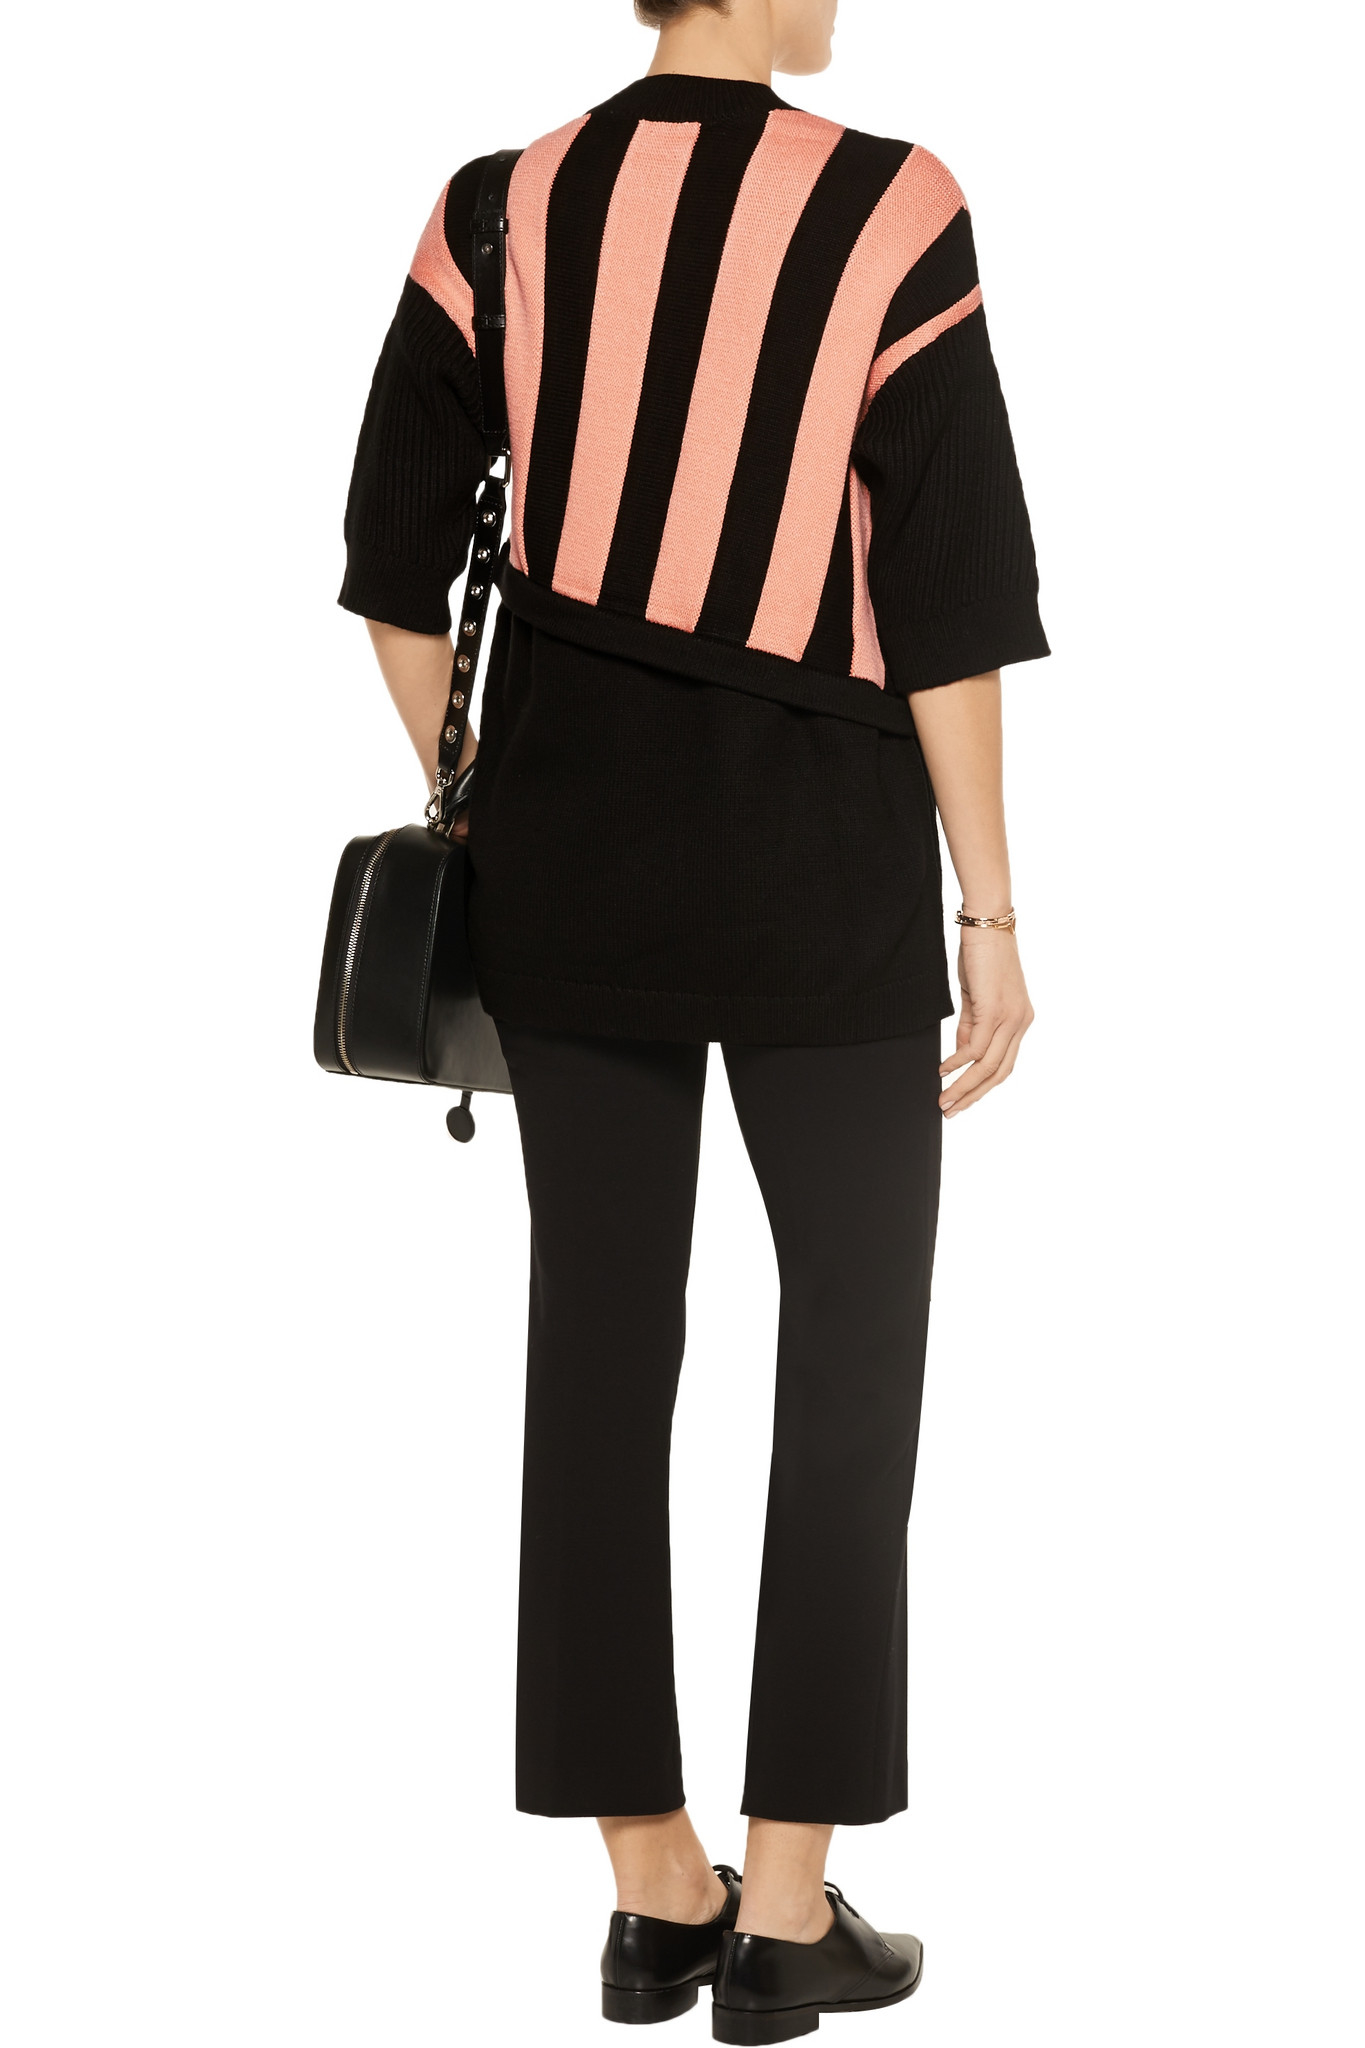 3.1 Phillip Lim Synthetic Two-tone Jacquard-knit Sweater in Black